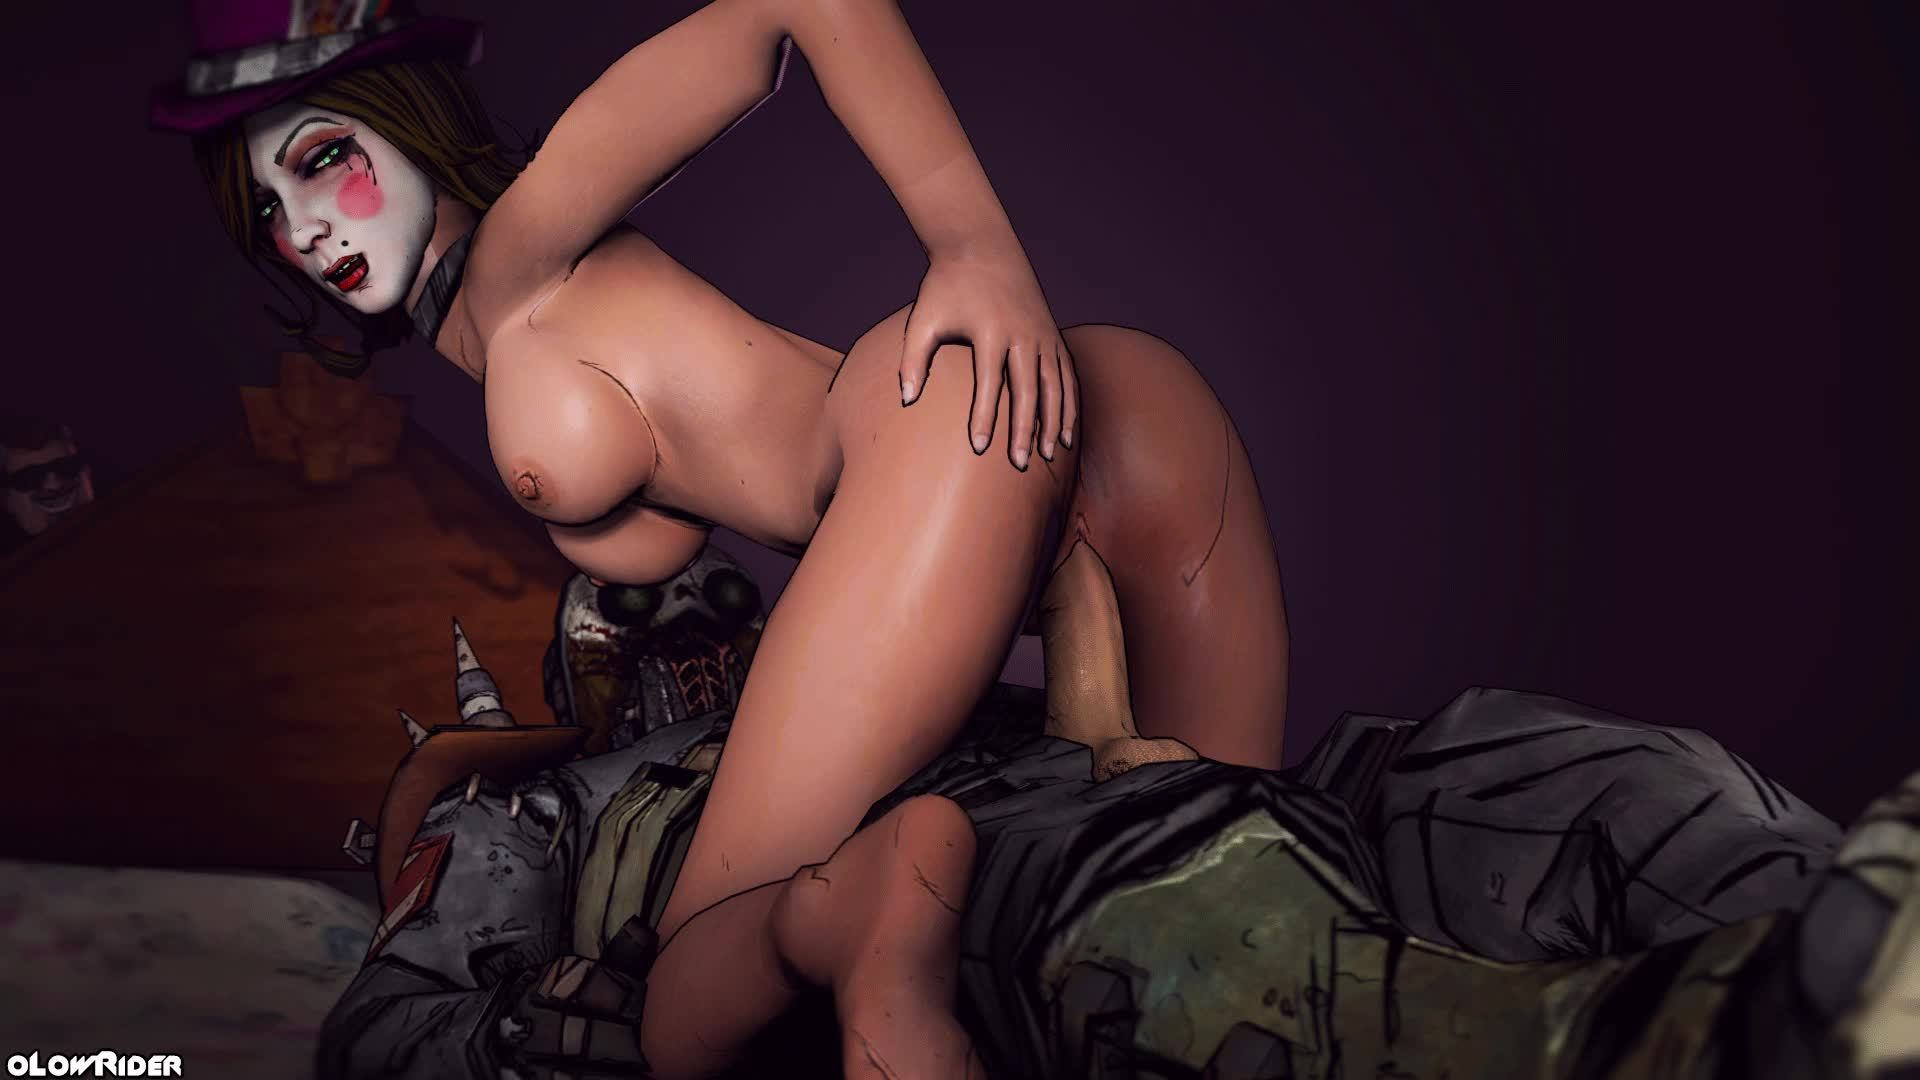 Borderlands sex animation sex scene